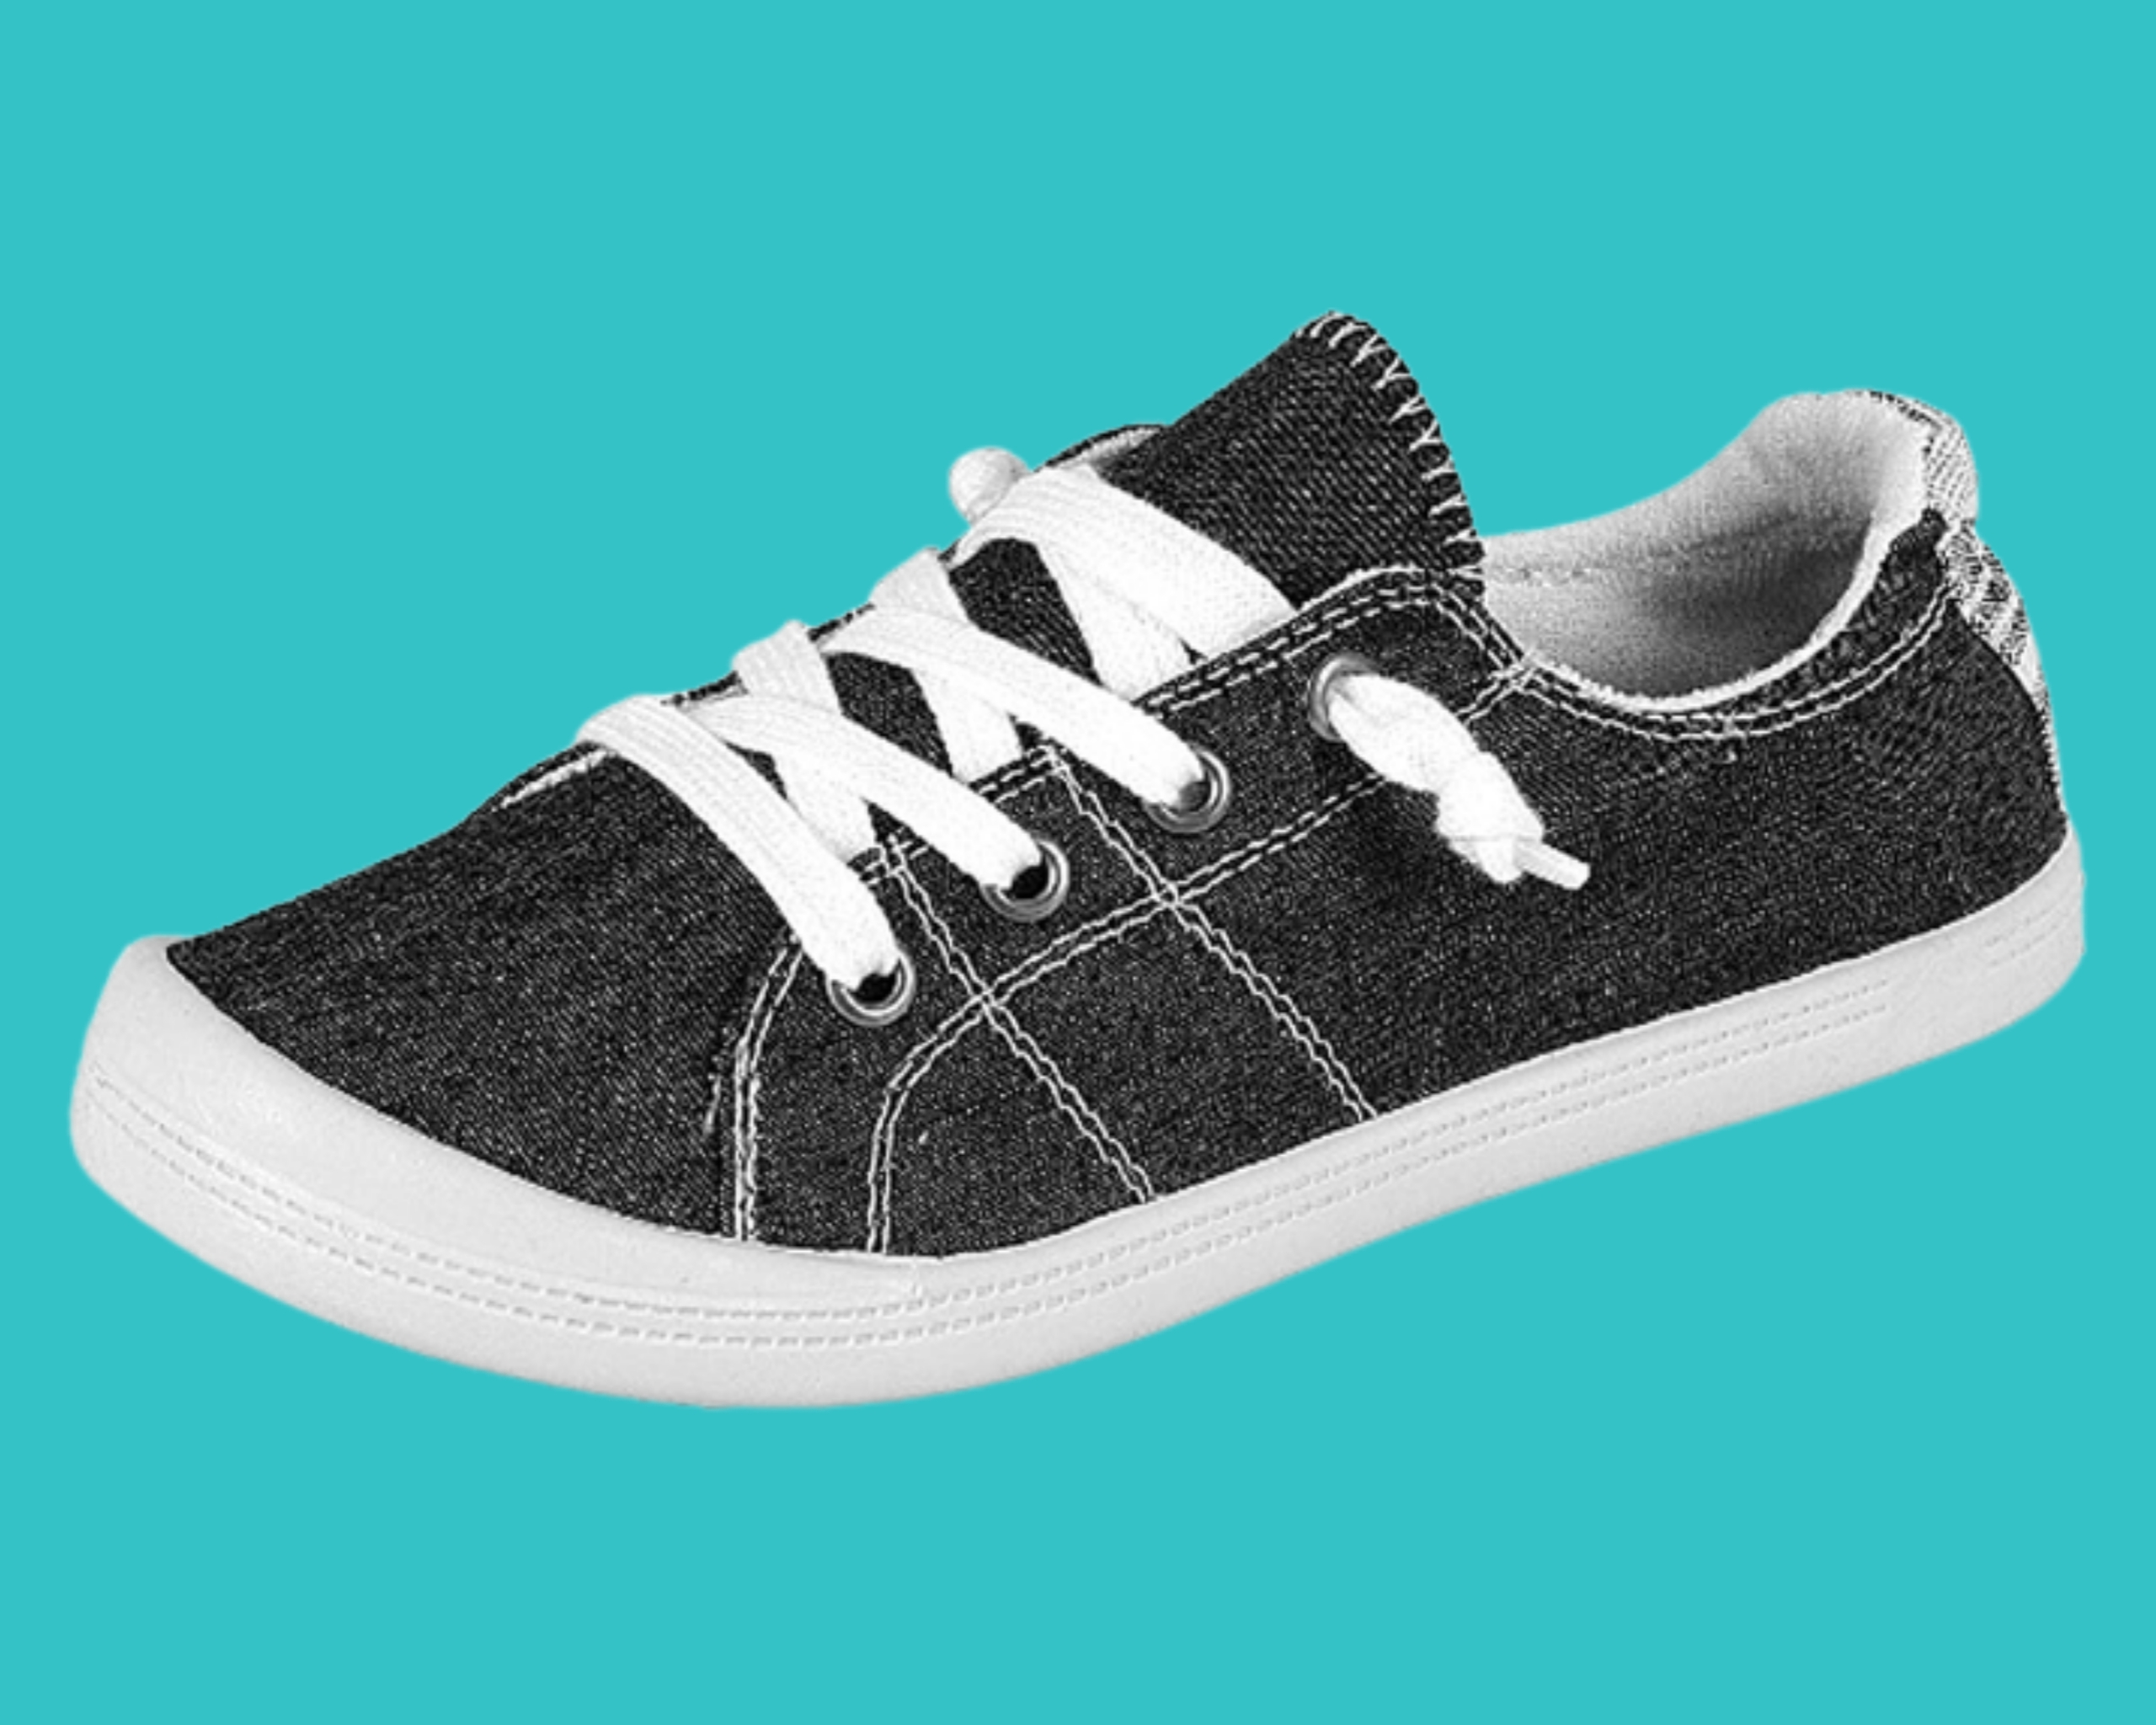 Comfortable Sneakers for Pregnant women